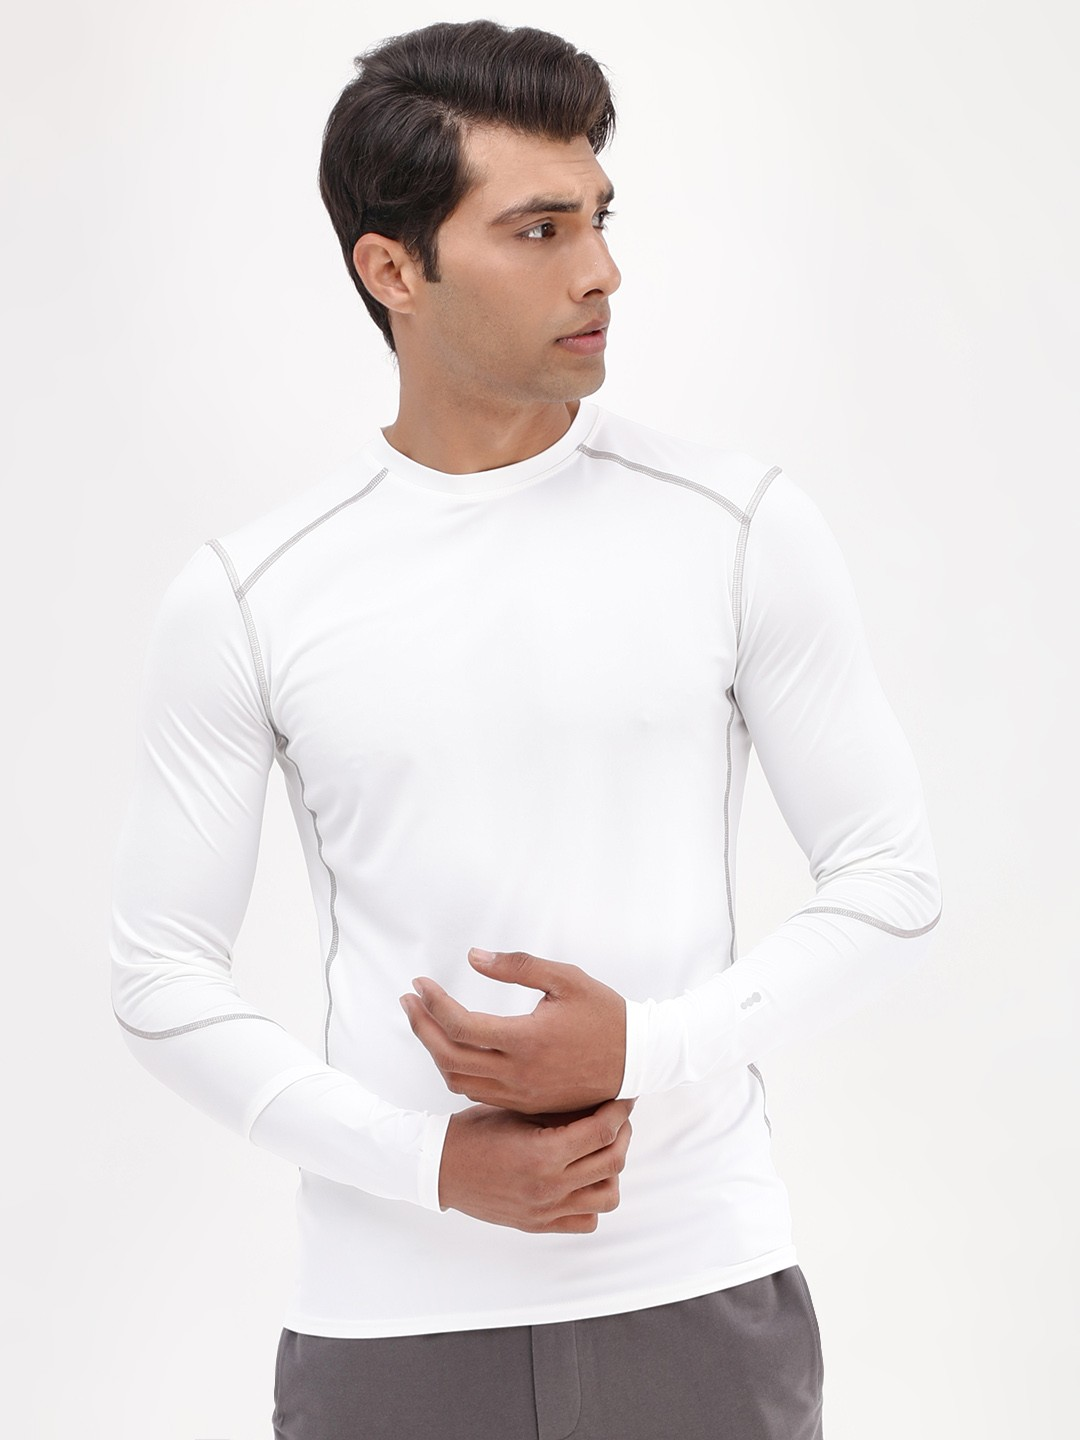 New Look White Crew Neck Active T-Shirt 1